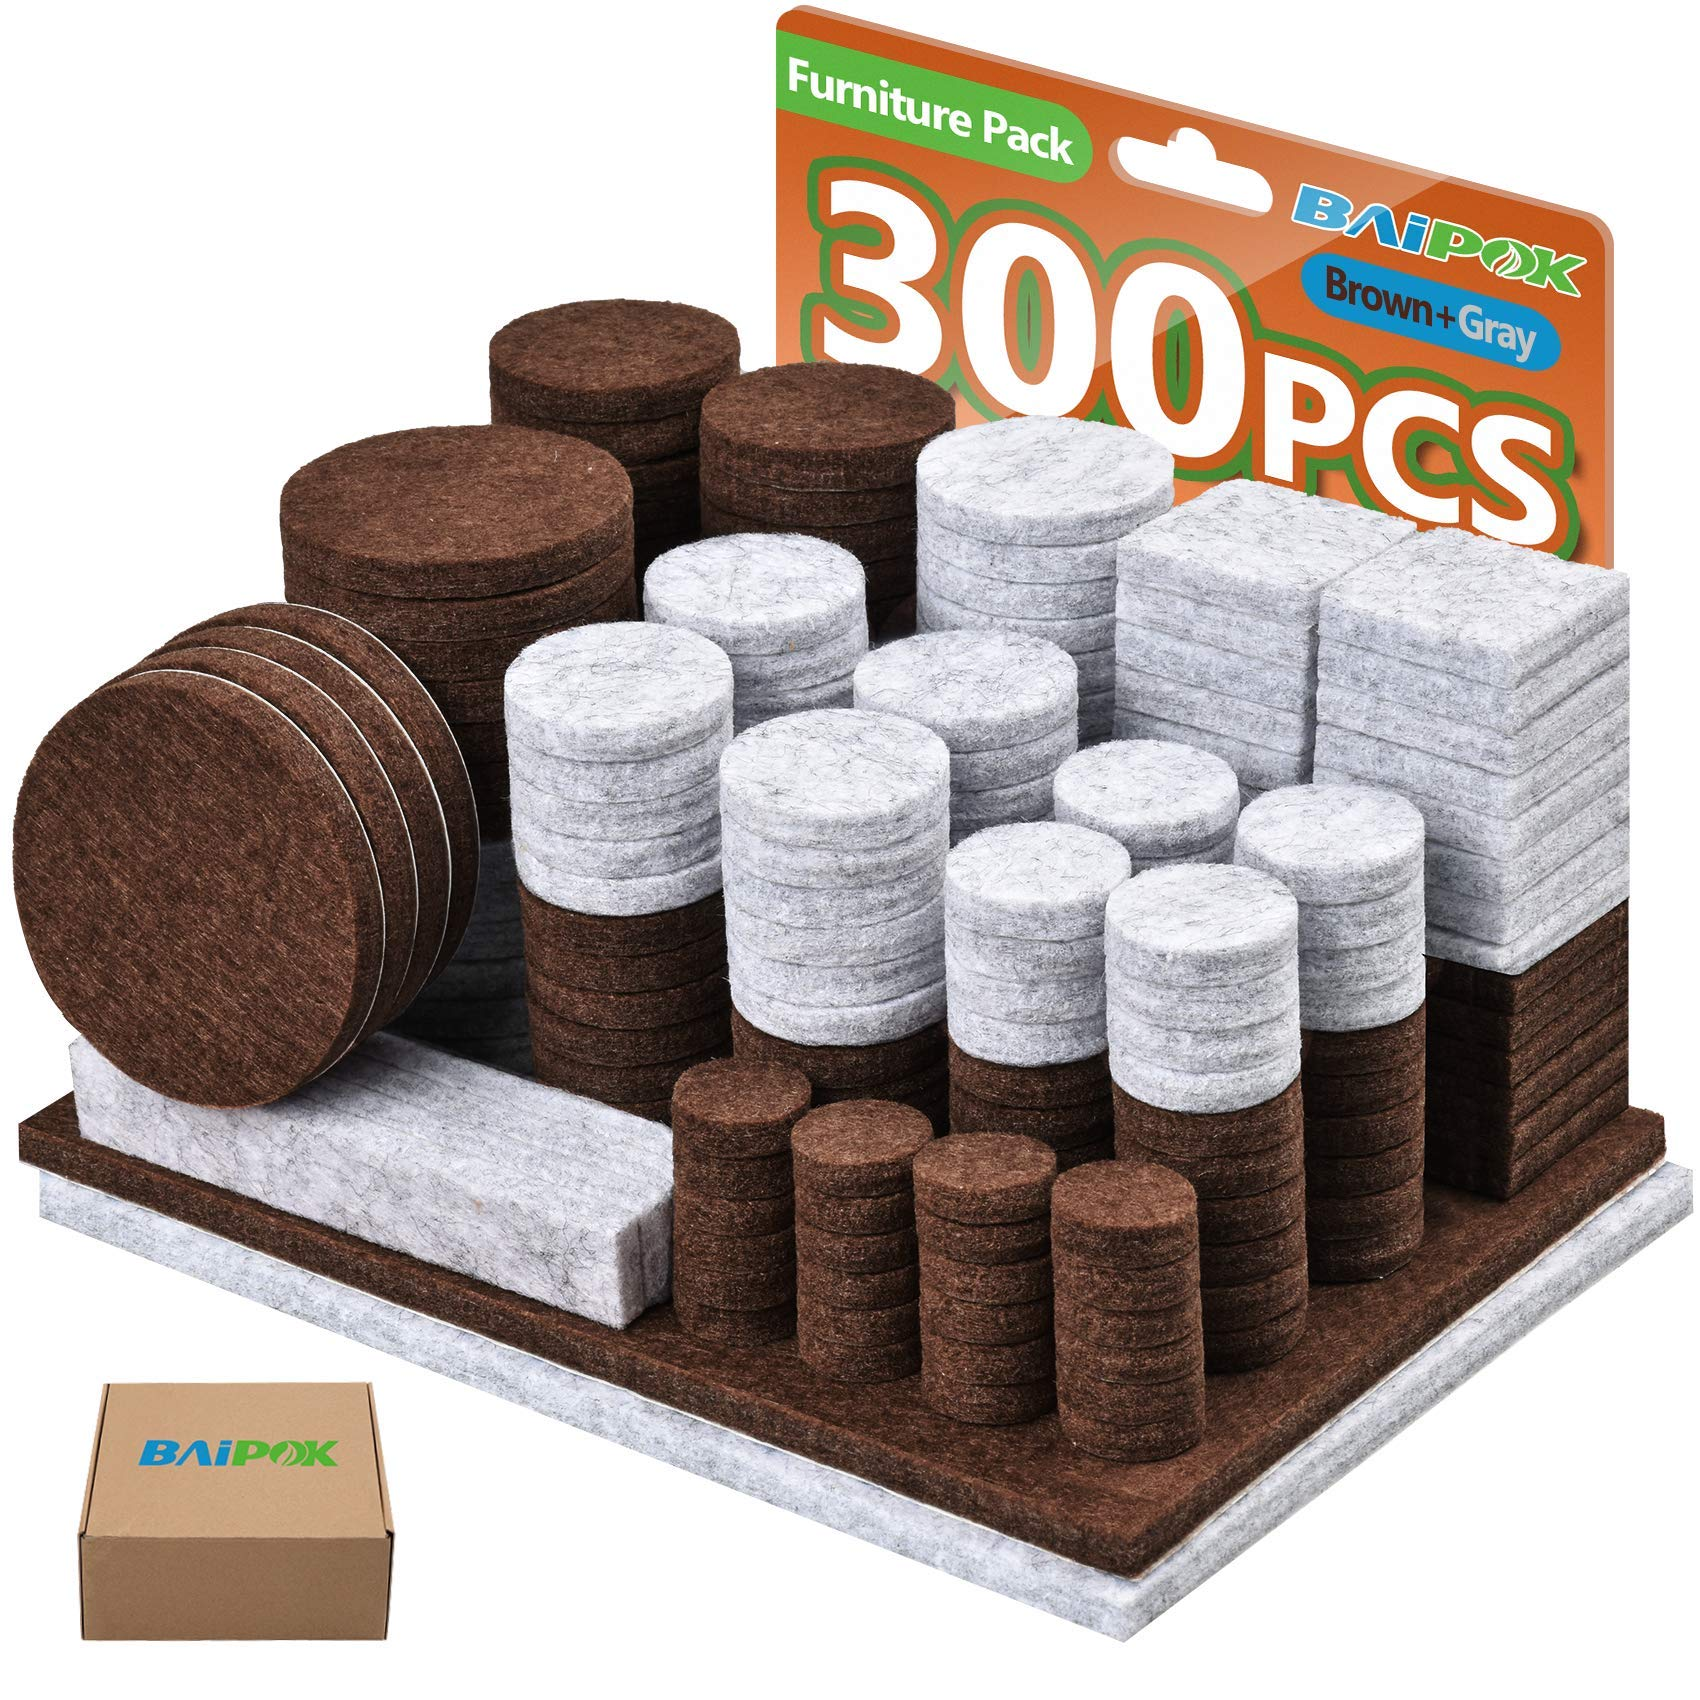 Felt Pads 300 Pcs Furniture Pads Two Colors (Brown 130 + Gray 110), Various Sizes Self Adhesive Chair Leg Pads, Anti Scratch Floor Protectors for Hard Floor with 60 Cabinet Door Bumpers